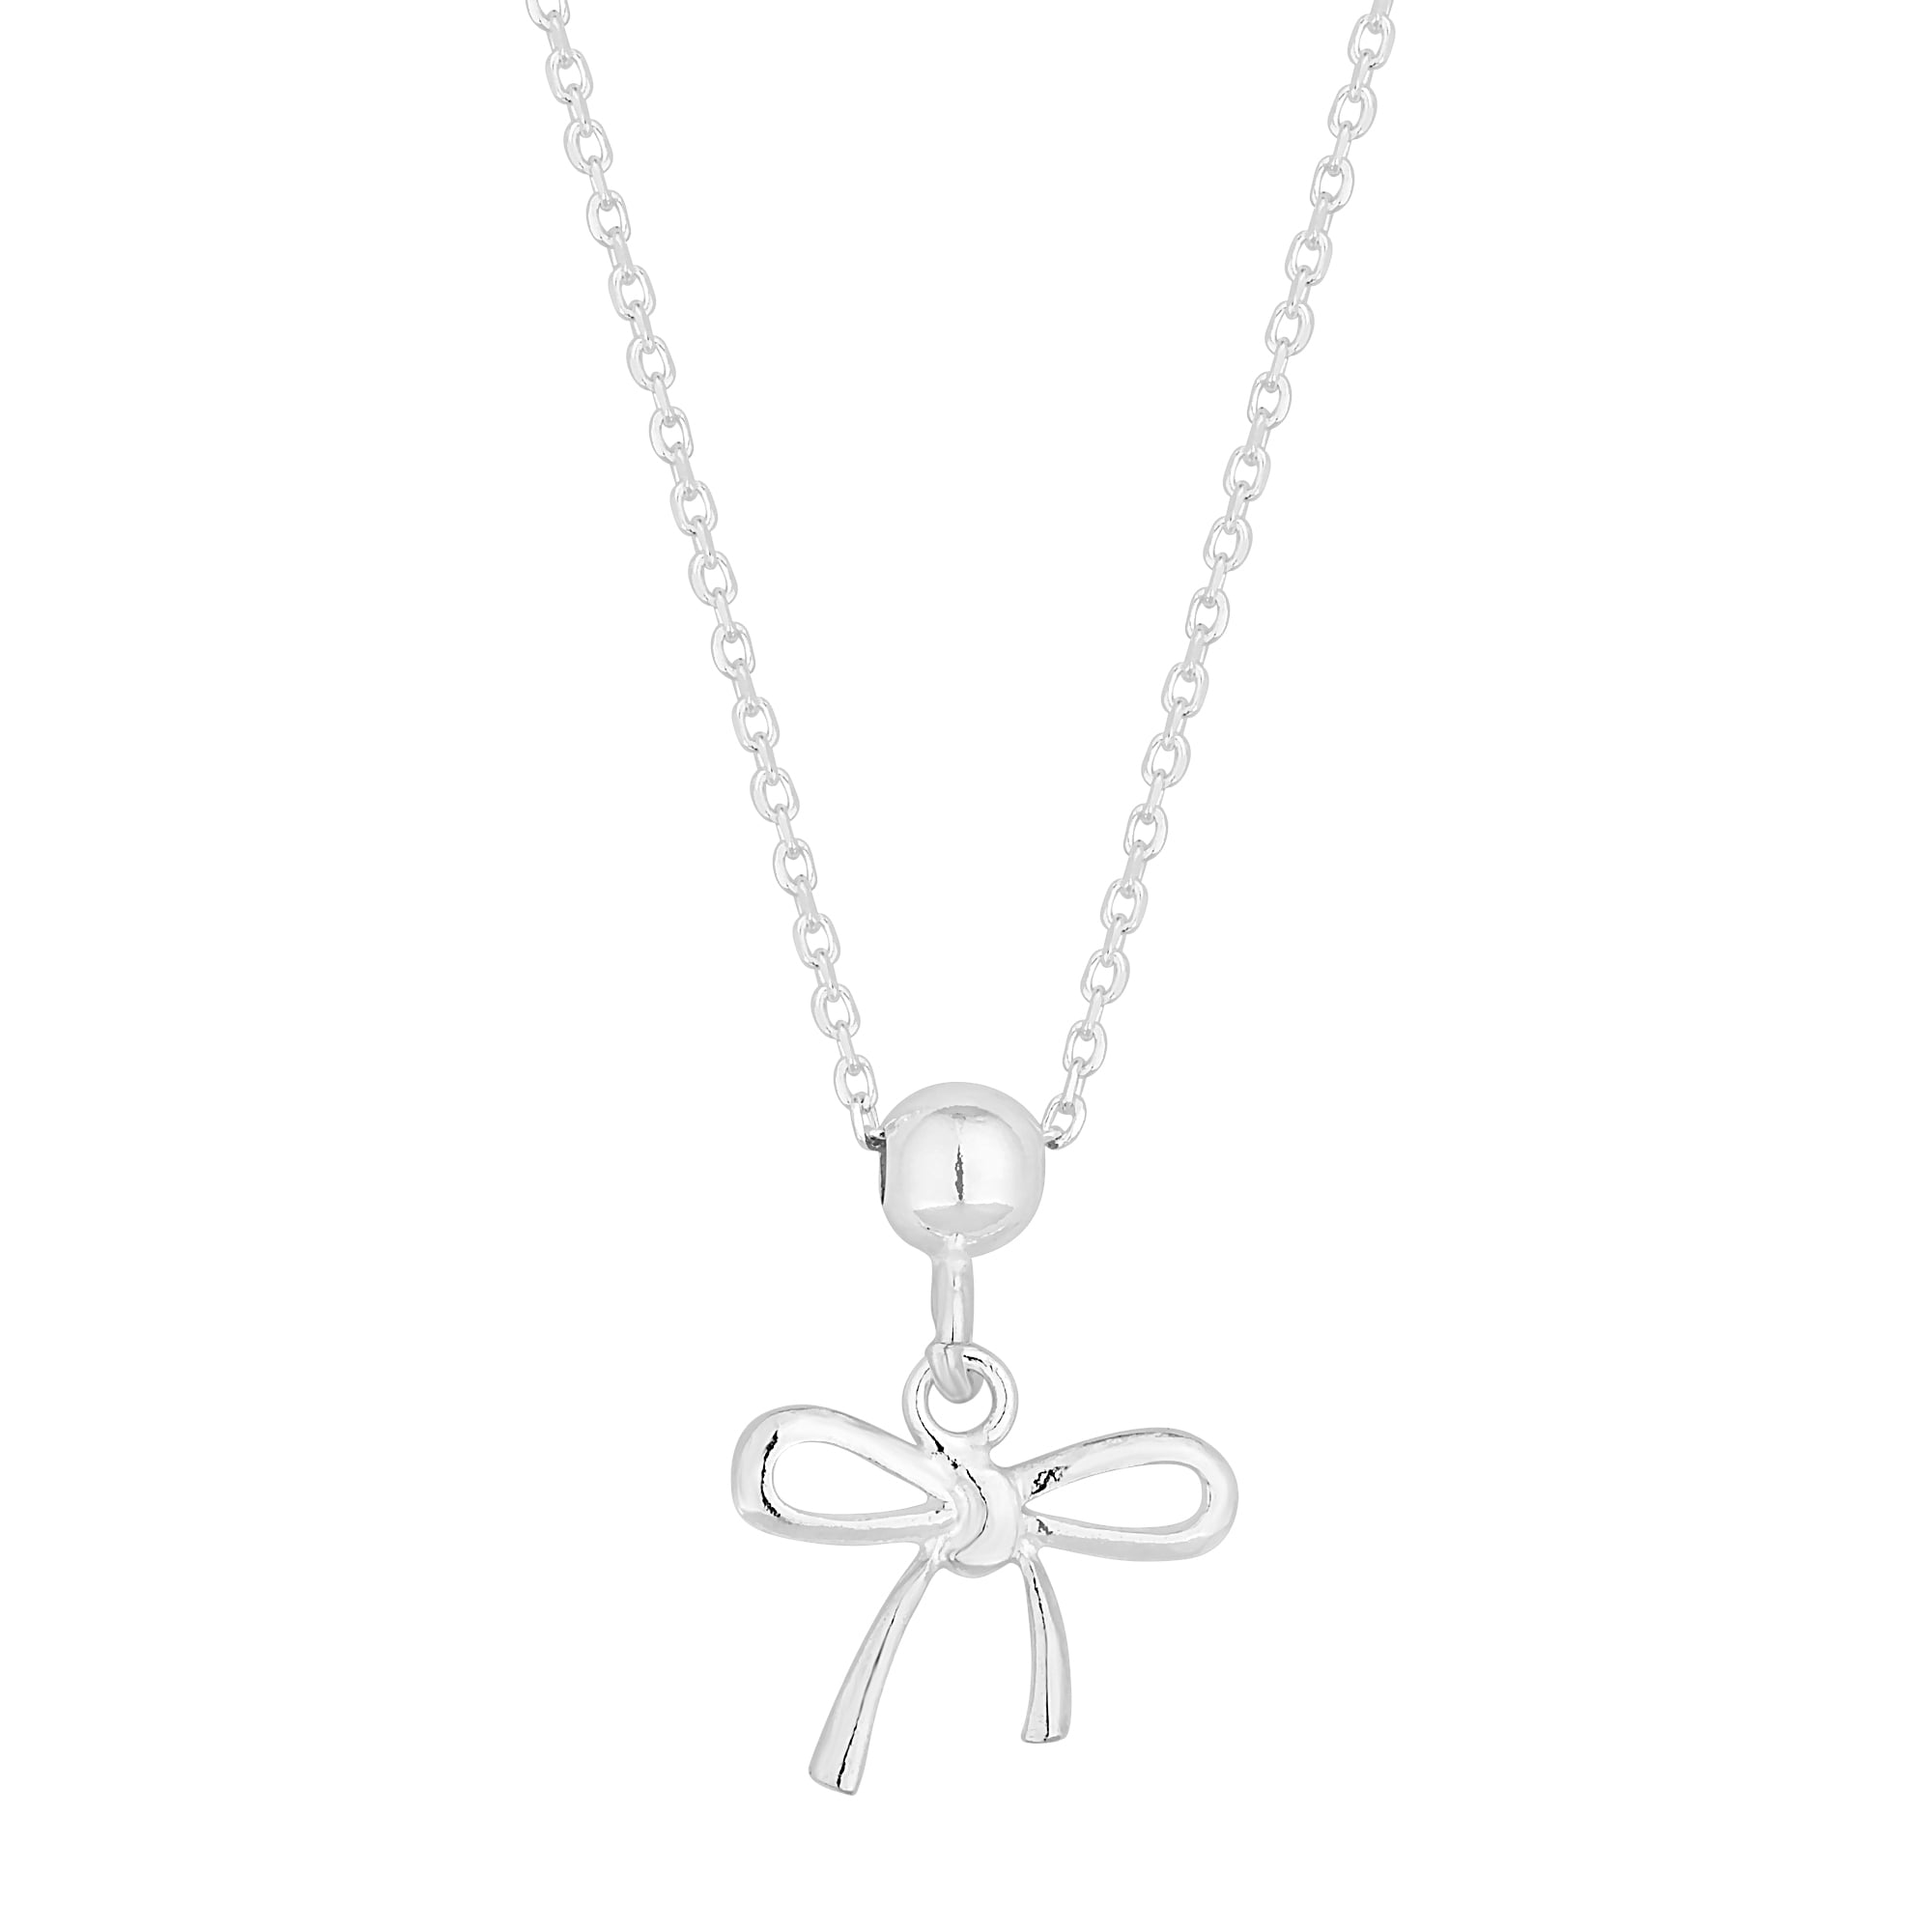 tara products bow necklace tyes dainty by vice bowtye